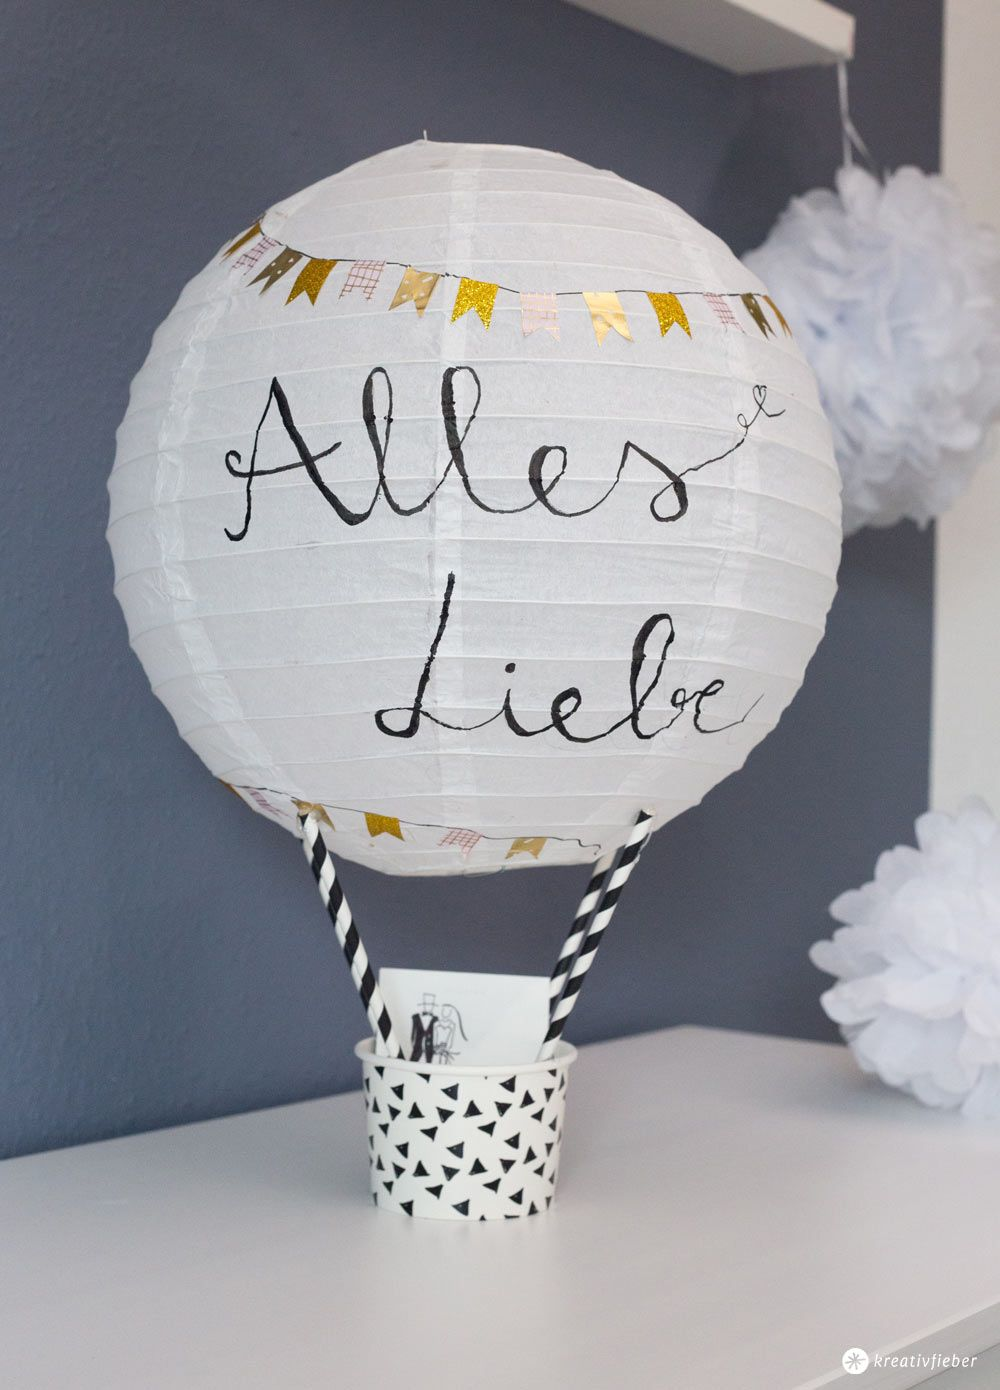 diy geschenkidee zur hochzeit hei luftballon geldgeschenk basteln diy lisa urs pinterest. Black Bedroom Furniture Sets. Home Design Ideas